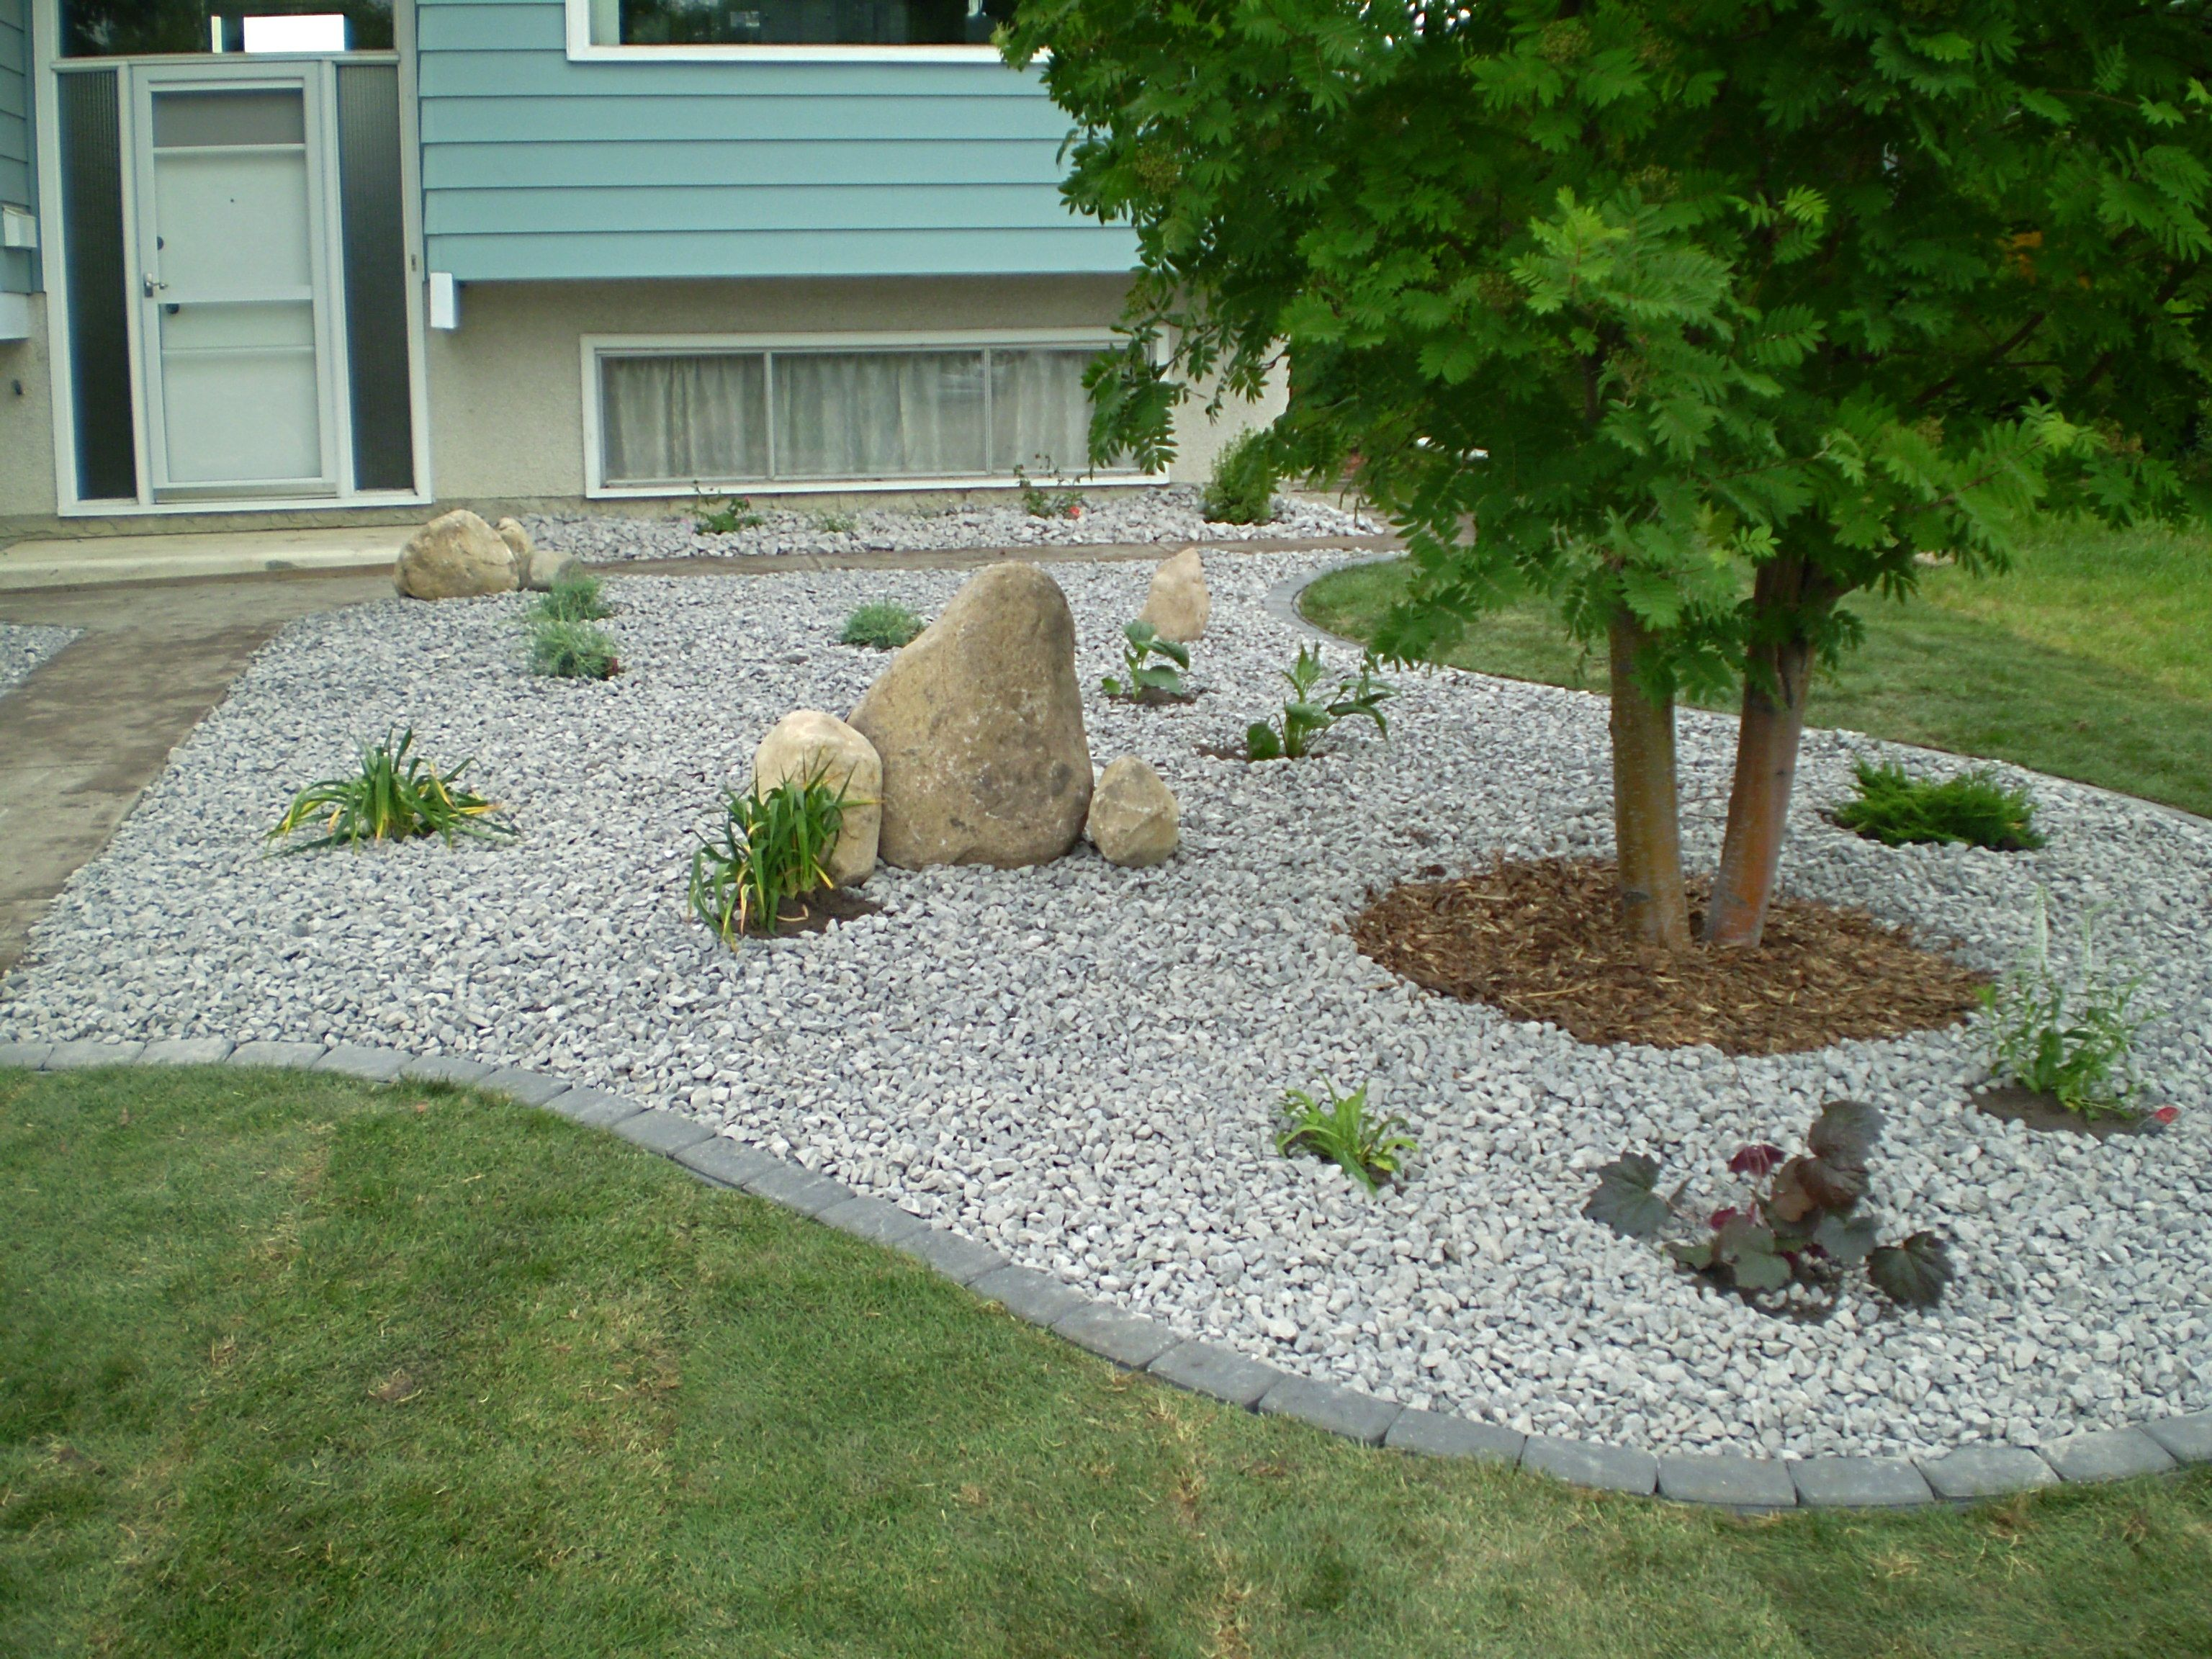 landscaping with rocks and stones whitemud garden centre and landscaping edmonton nursery landscape